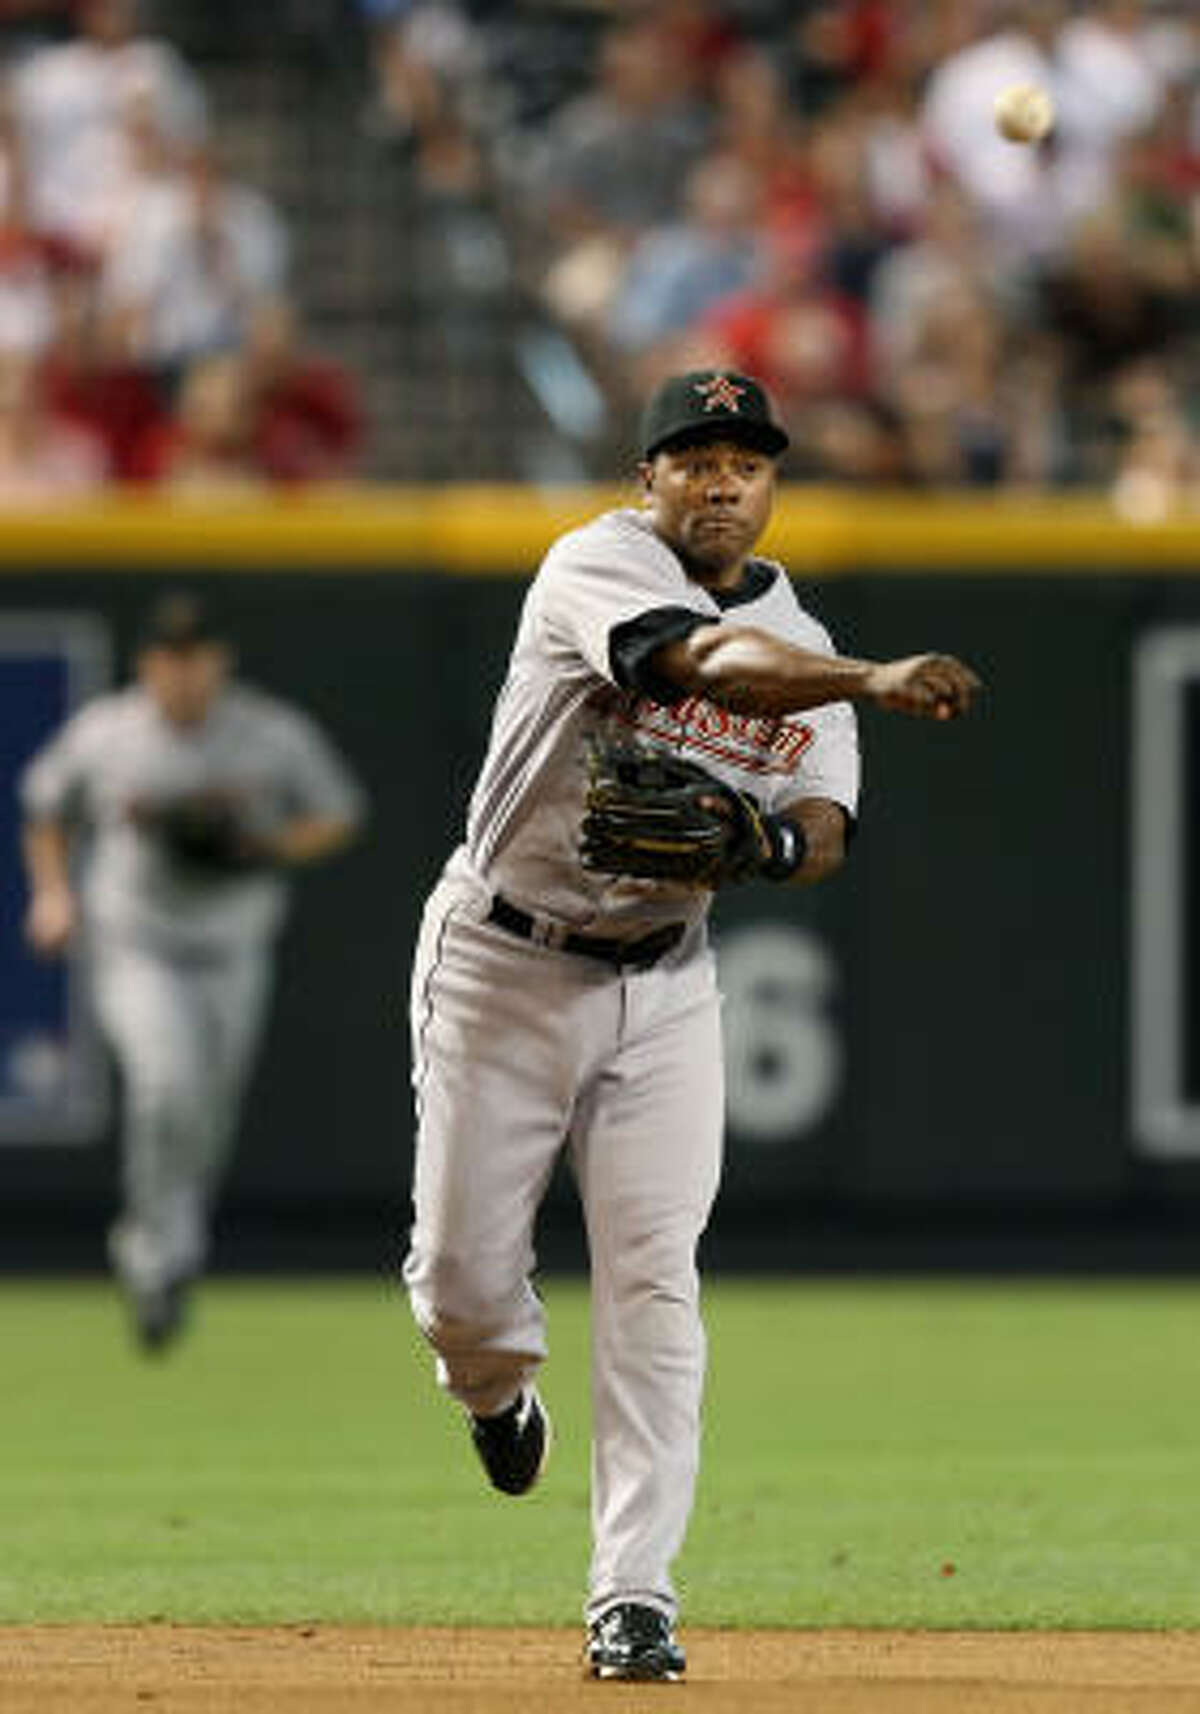 Shortstop Miguel Tejada fields a ground ball against the Arizona Diamondbacks.